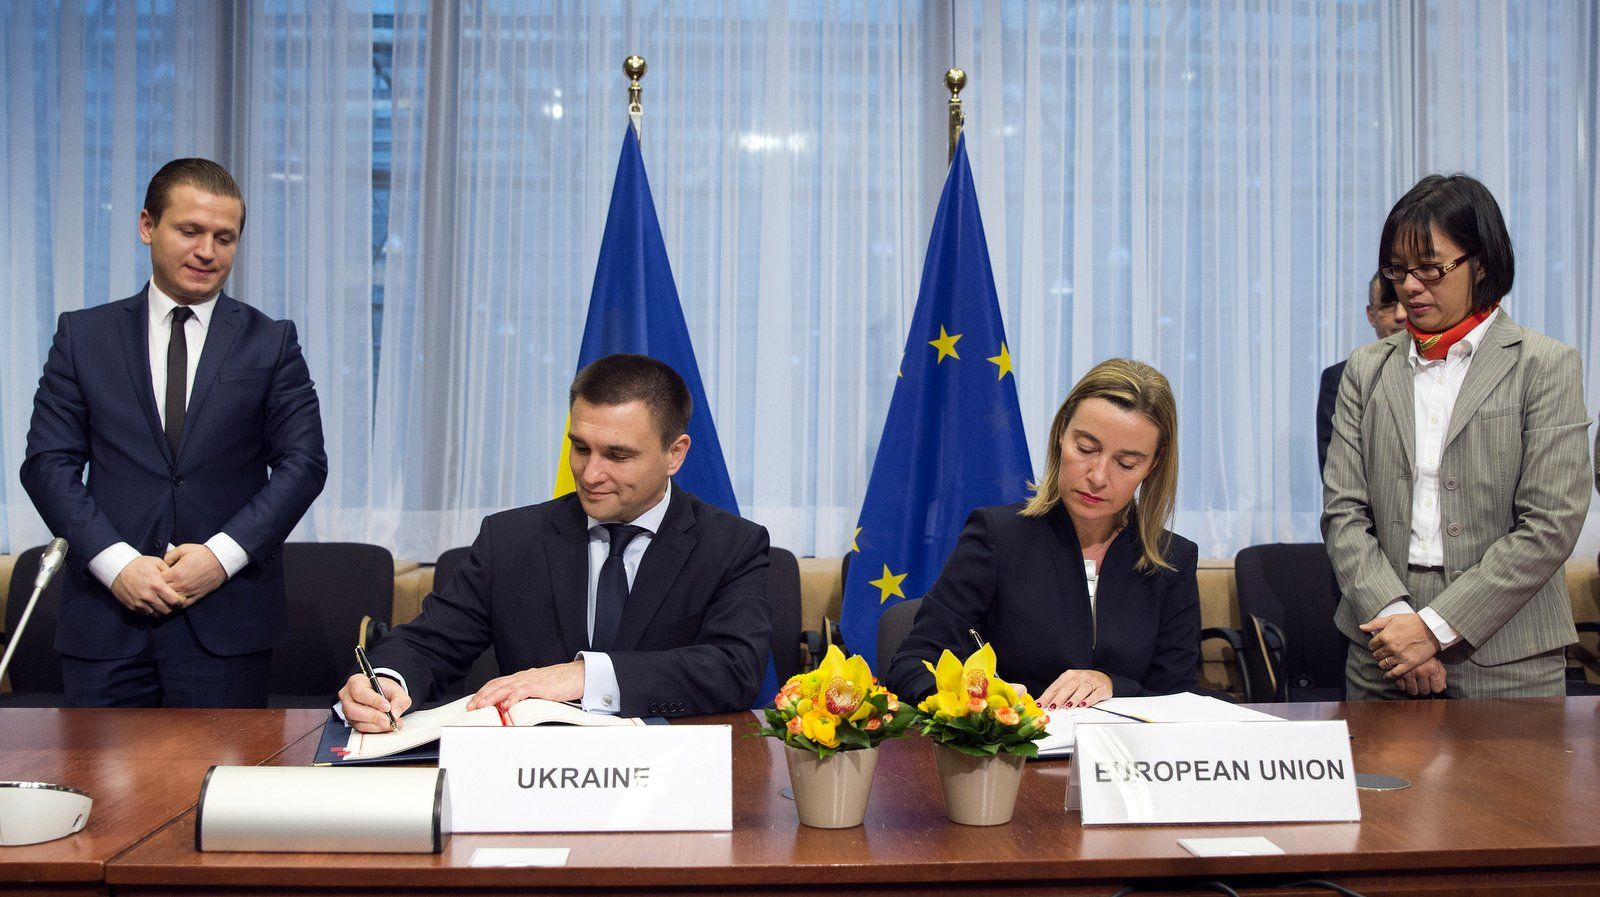 Ukraine Crisis Eu Not Ready To Go Much Further On Sanctions